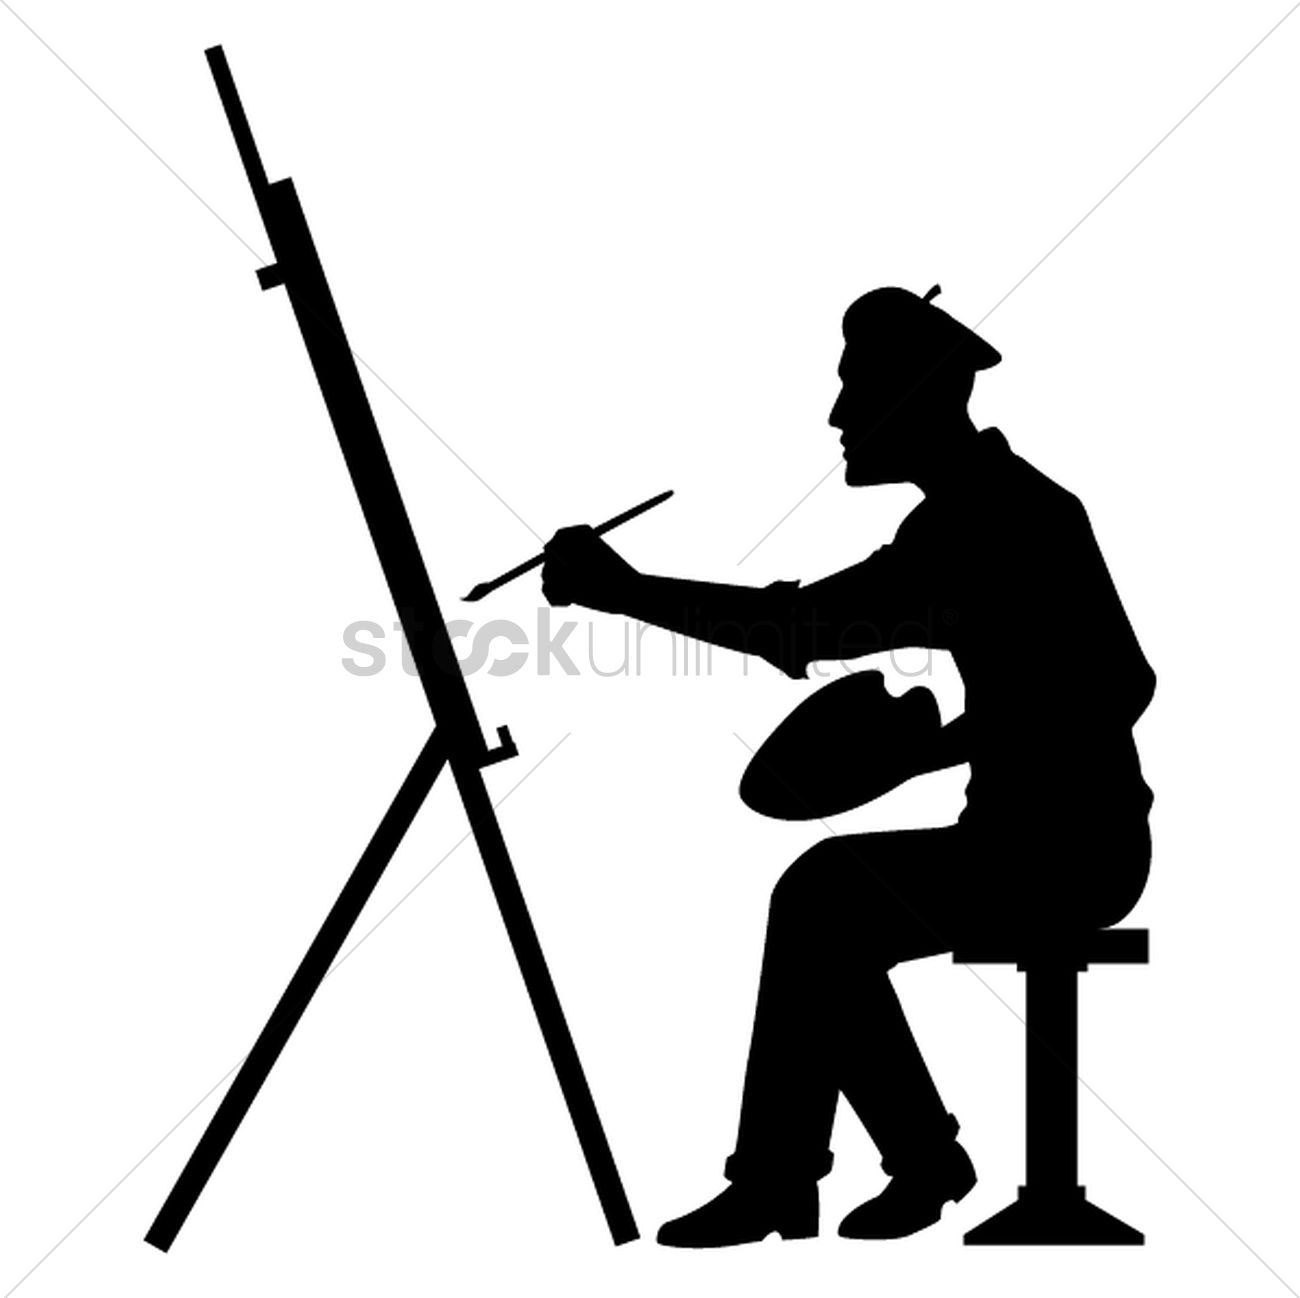 Silhouette Paintings Of People Silhouette Of Artist With Canvas Board Vector Image